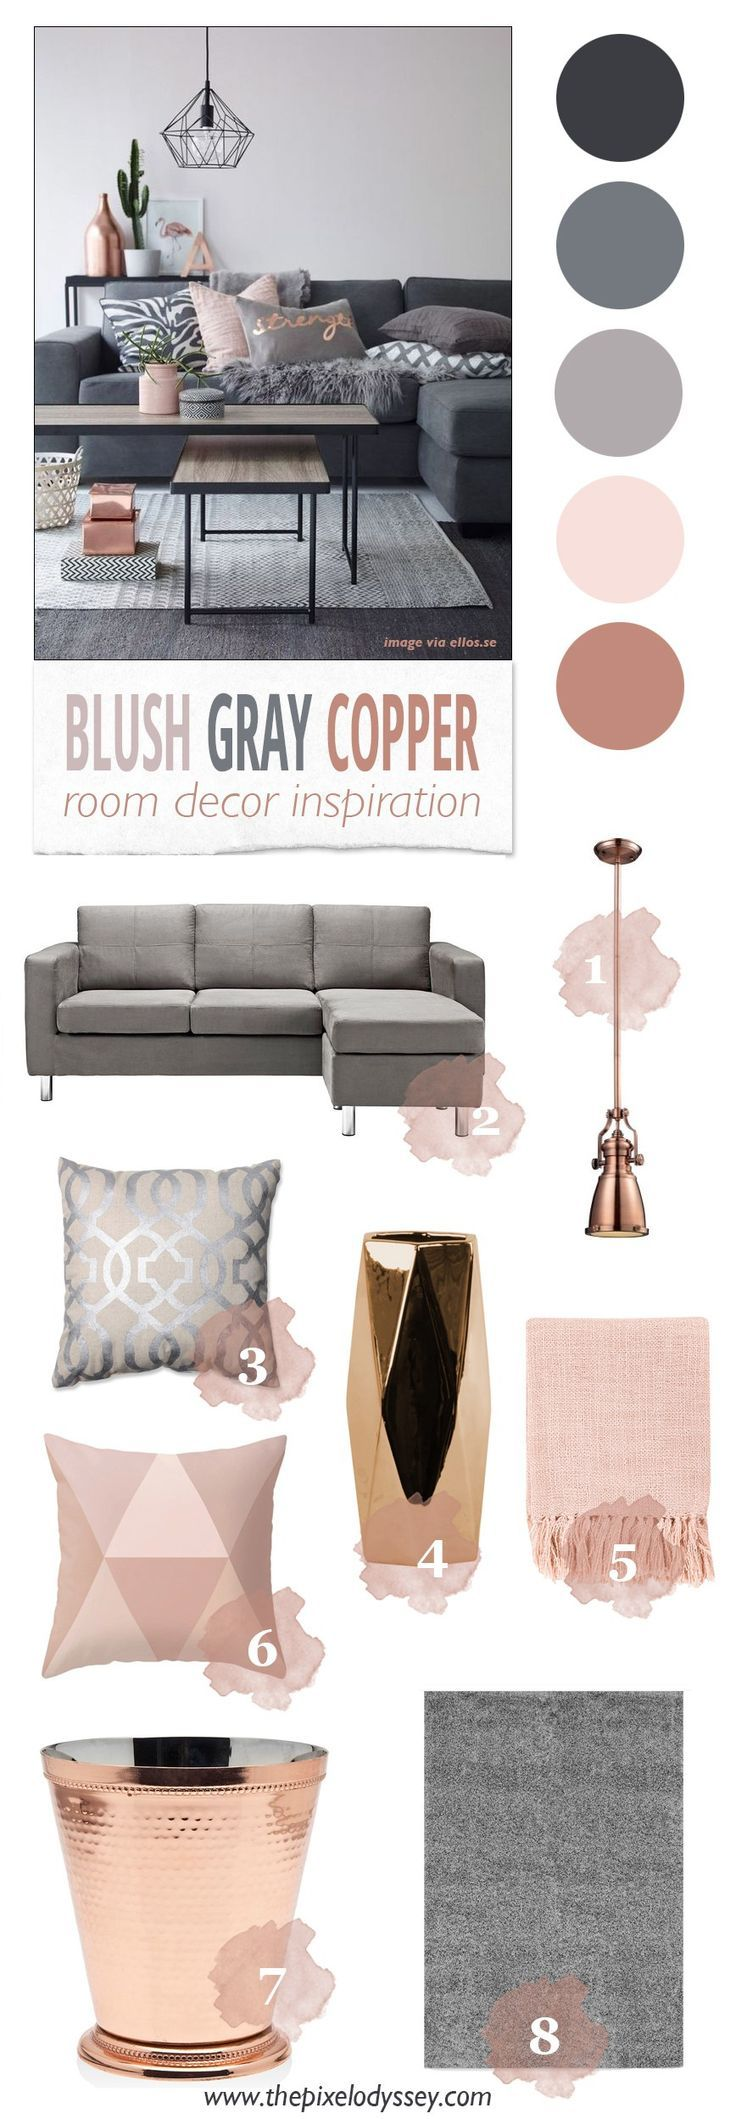 cool Déco Salon - Blush Gray Copper Room Decor Inspiration - The Pixel Odyssey